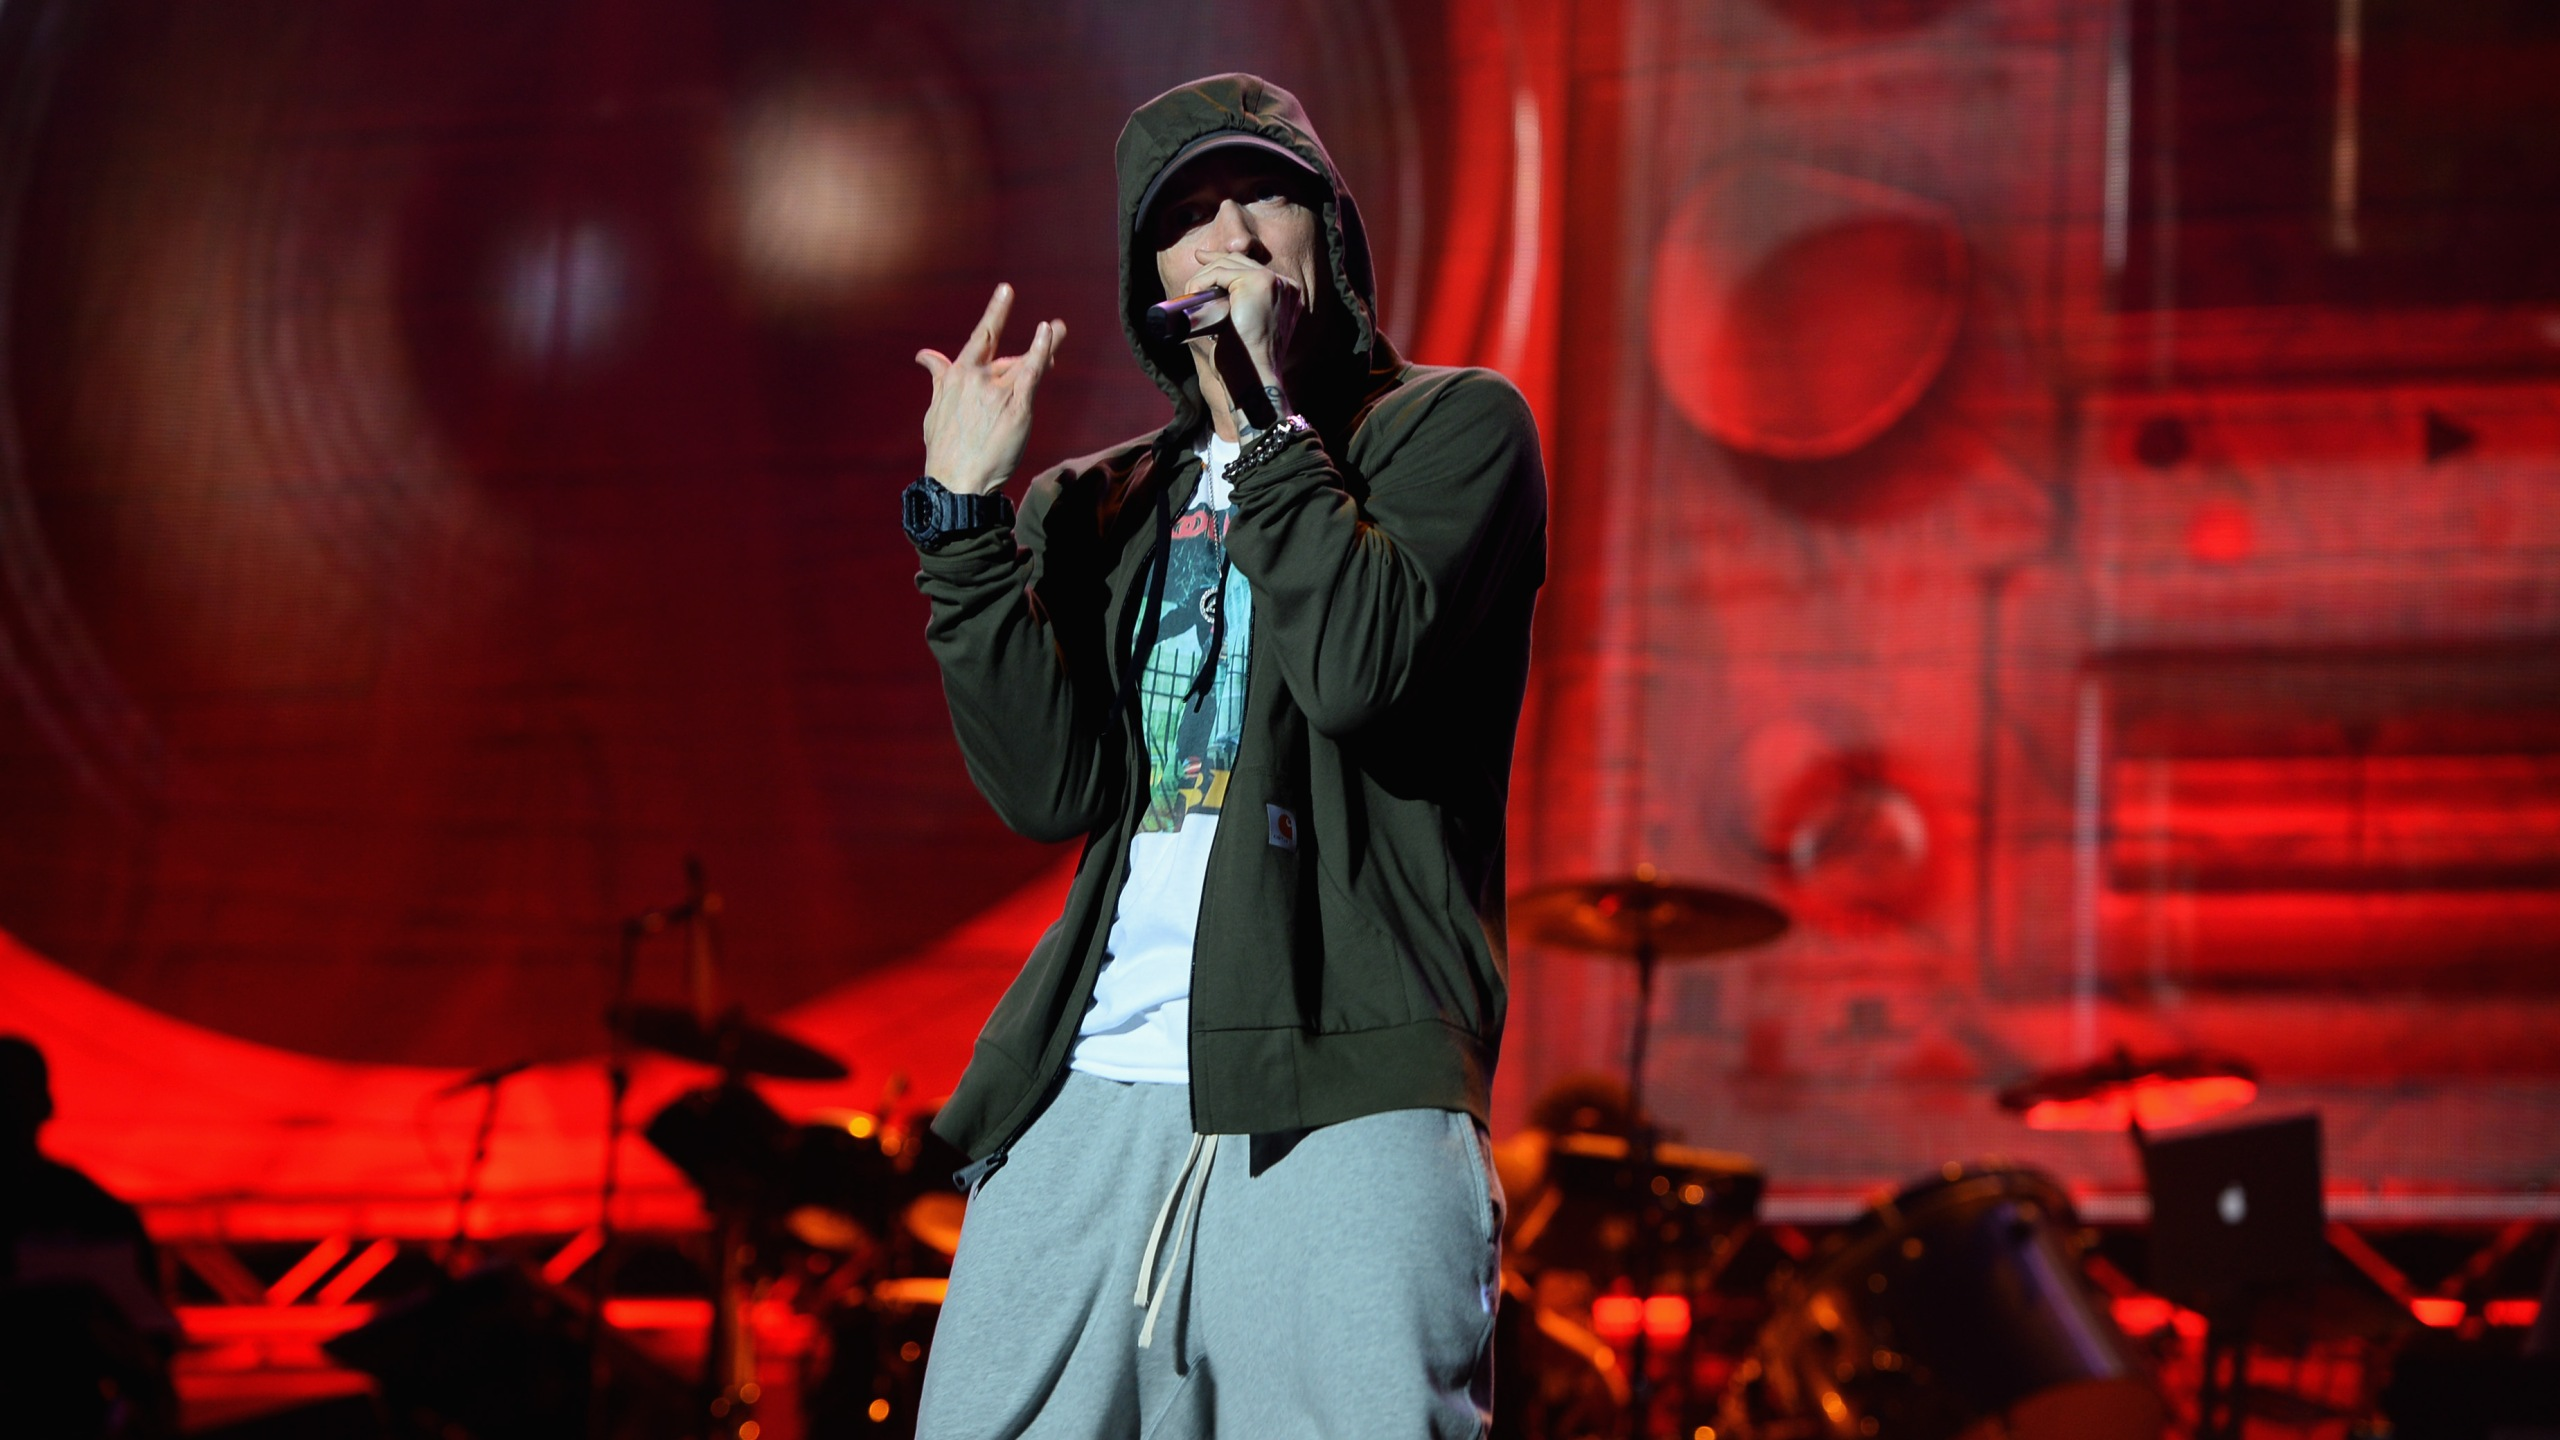 Eminem performs at Samsung Galaxy stage during 2014 Lollapalooza Day One at Grant Park on August 1, 2014 in Chicago, Illinois. (Credit: Theo Wargo/Getty Images)